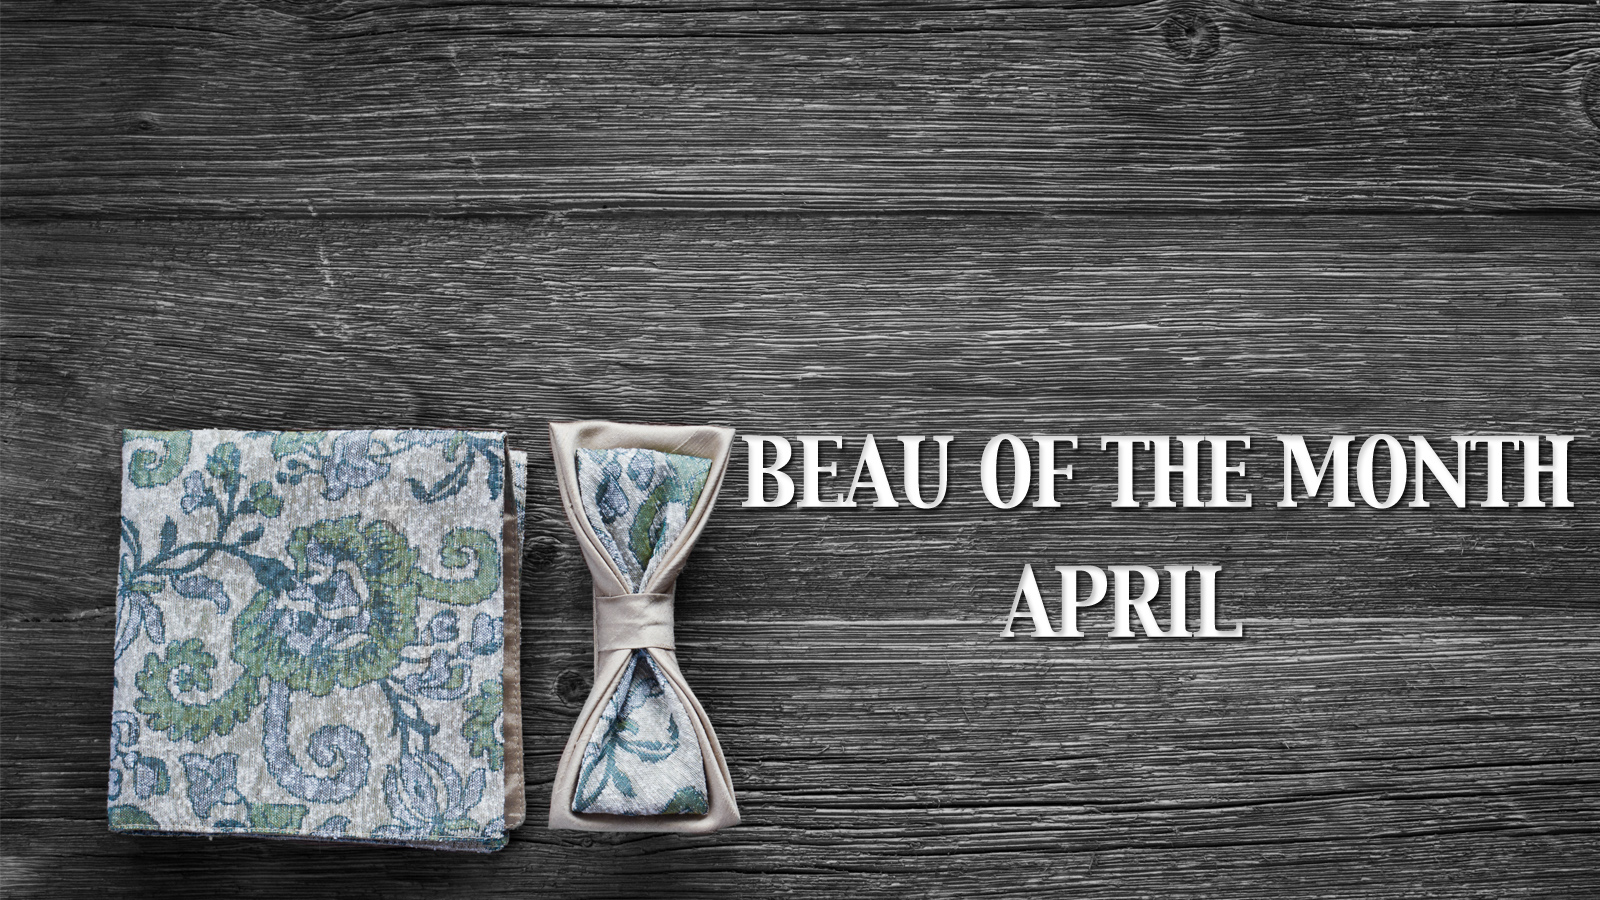 Beau of the Month-April